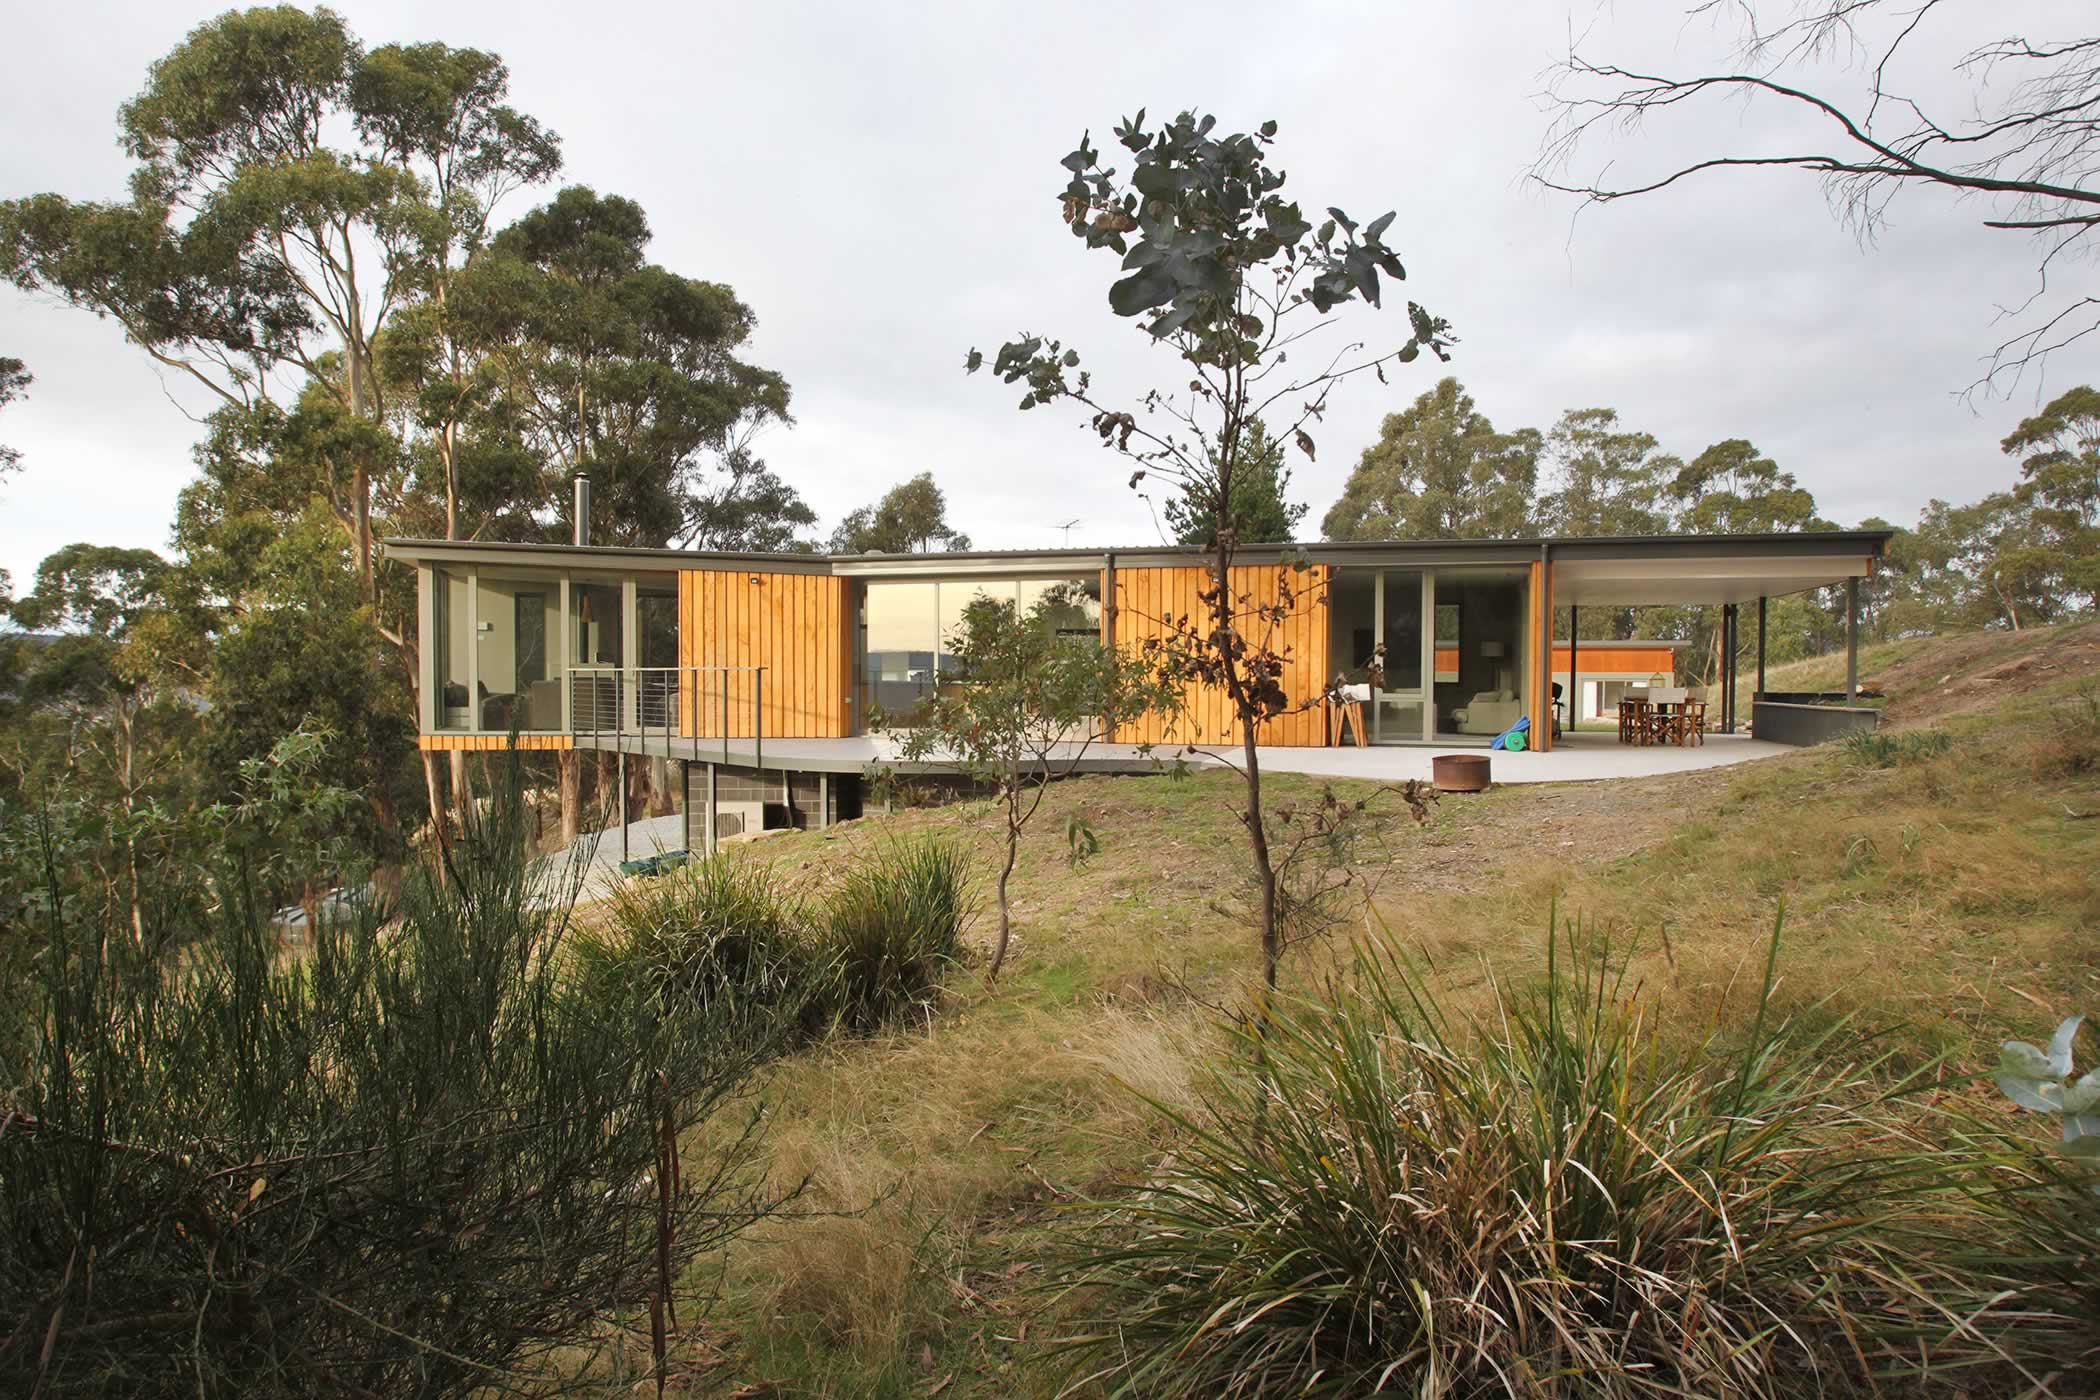 Jamieson Road Residence, Tasmania: Dramatically extending into space for elevated views, the plan is also orientated for optimal passive solar gain and an easy indoor-outdoor connection to meet our clients' varied lifestyle needs. Photo by R. Lovell.